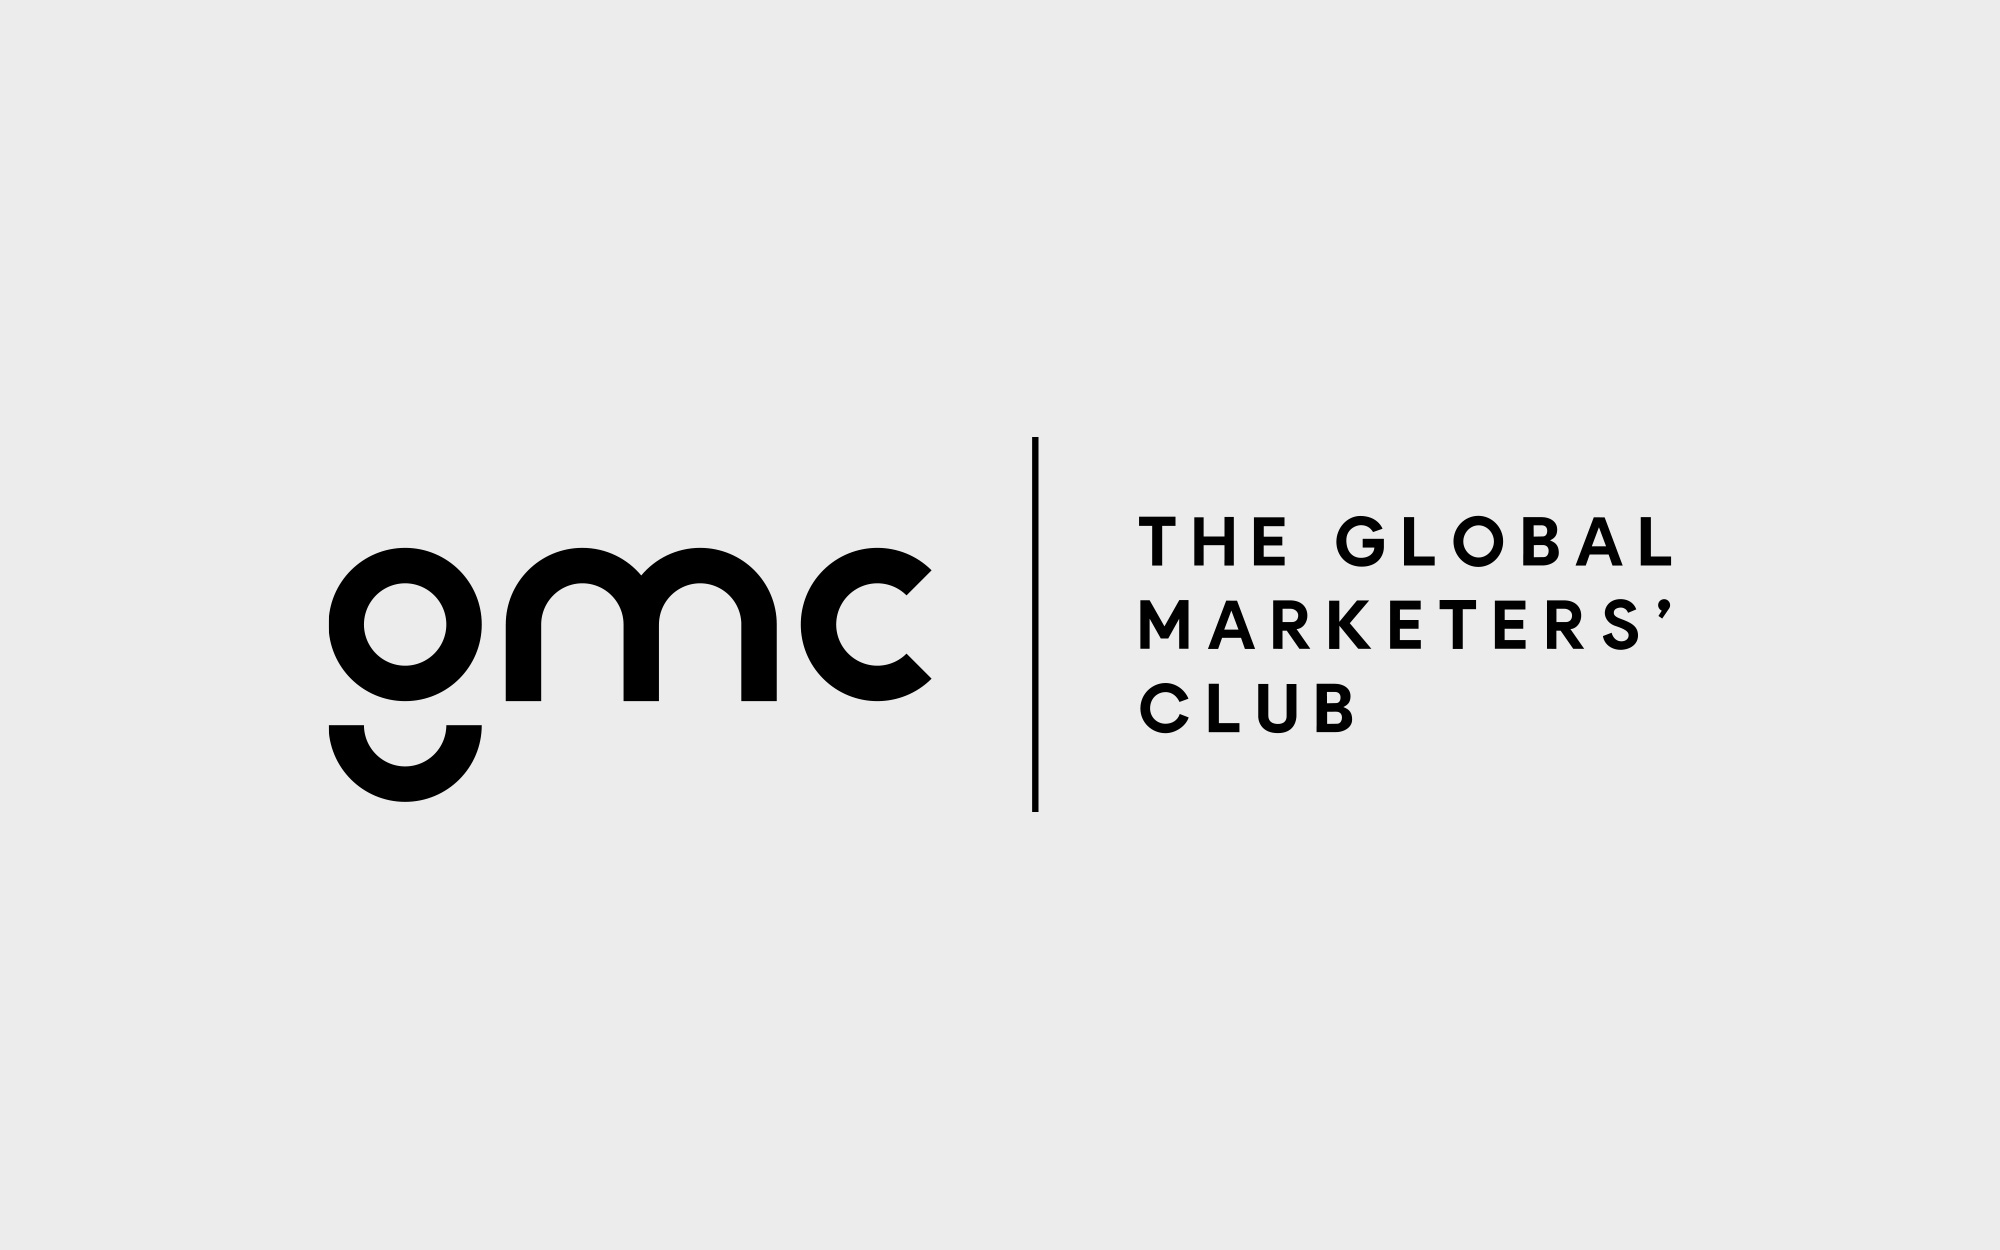 The Global Marketers' Club - Never Know Defeat